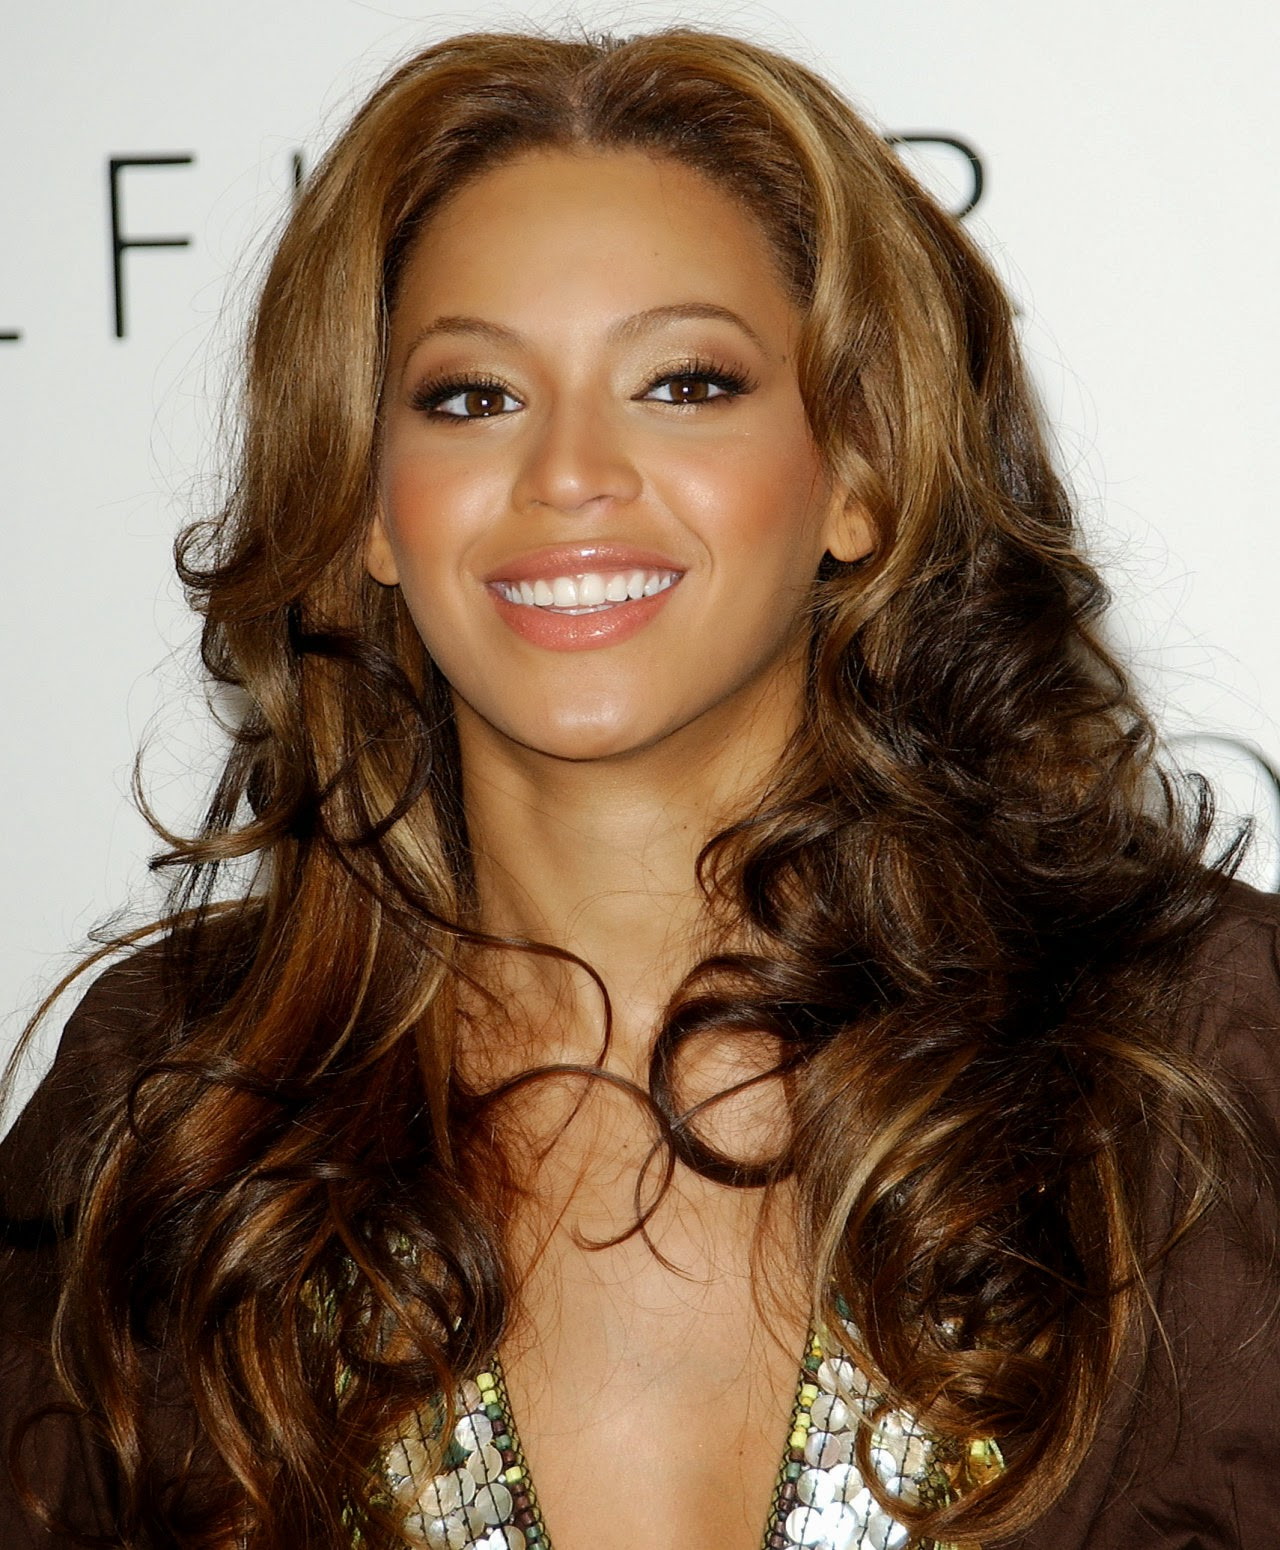 Latest Celebrity Photos: Beyonce Knowles Wallpapers Beyonce Knowles